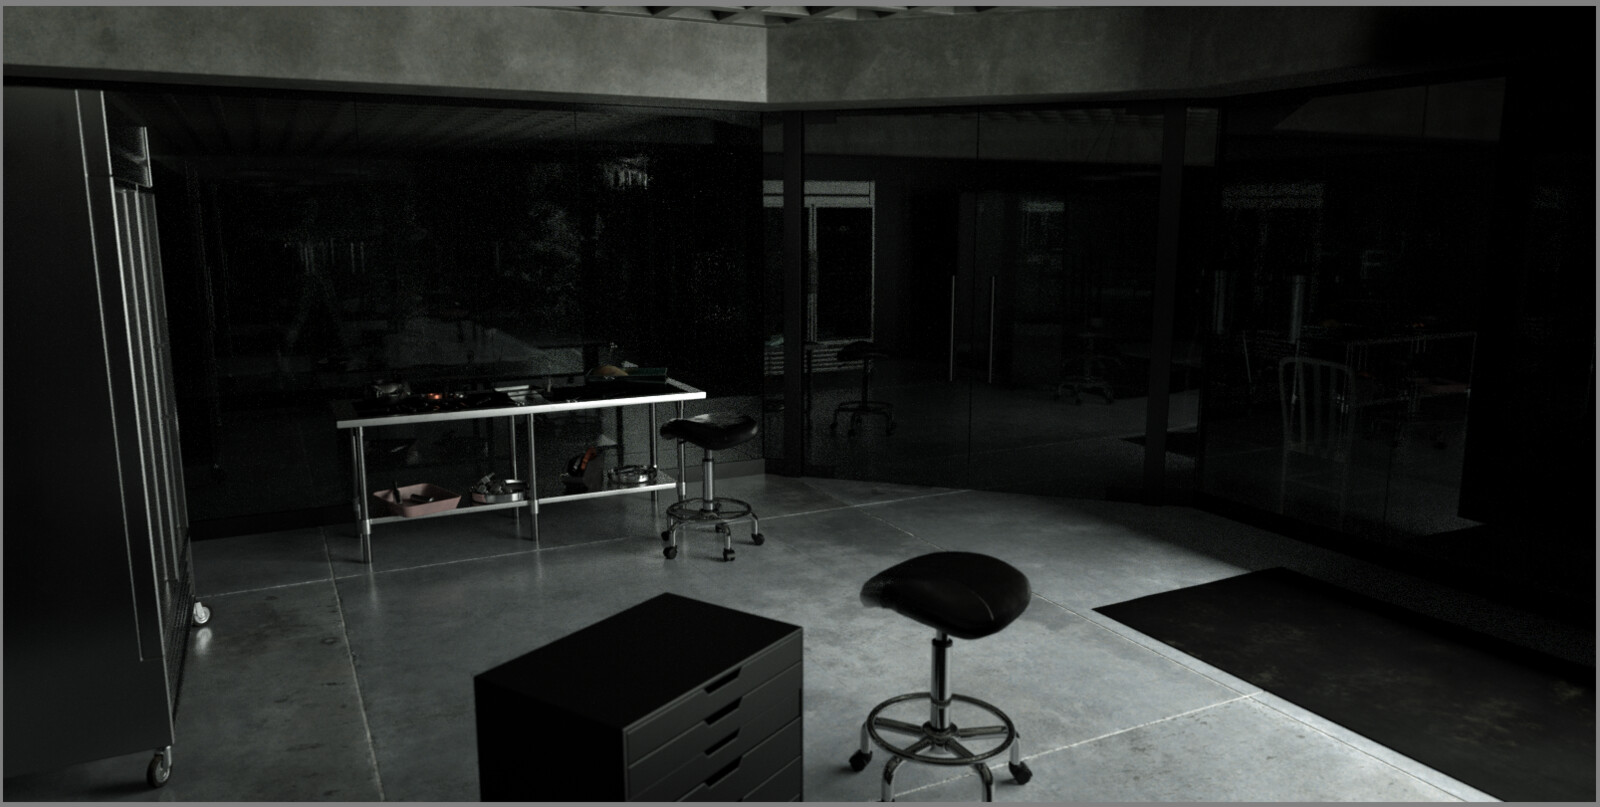 This is scene I modeled and textured the distant stainless steel work table with all the props on it. Also, I modeled and textured the fridge on the right.